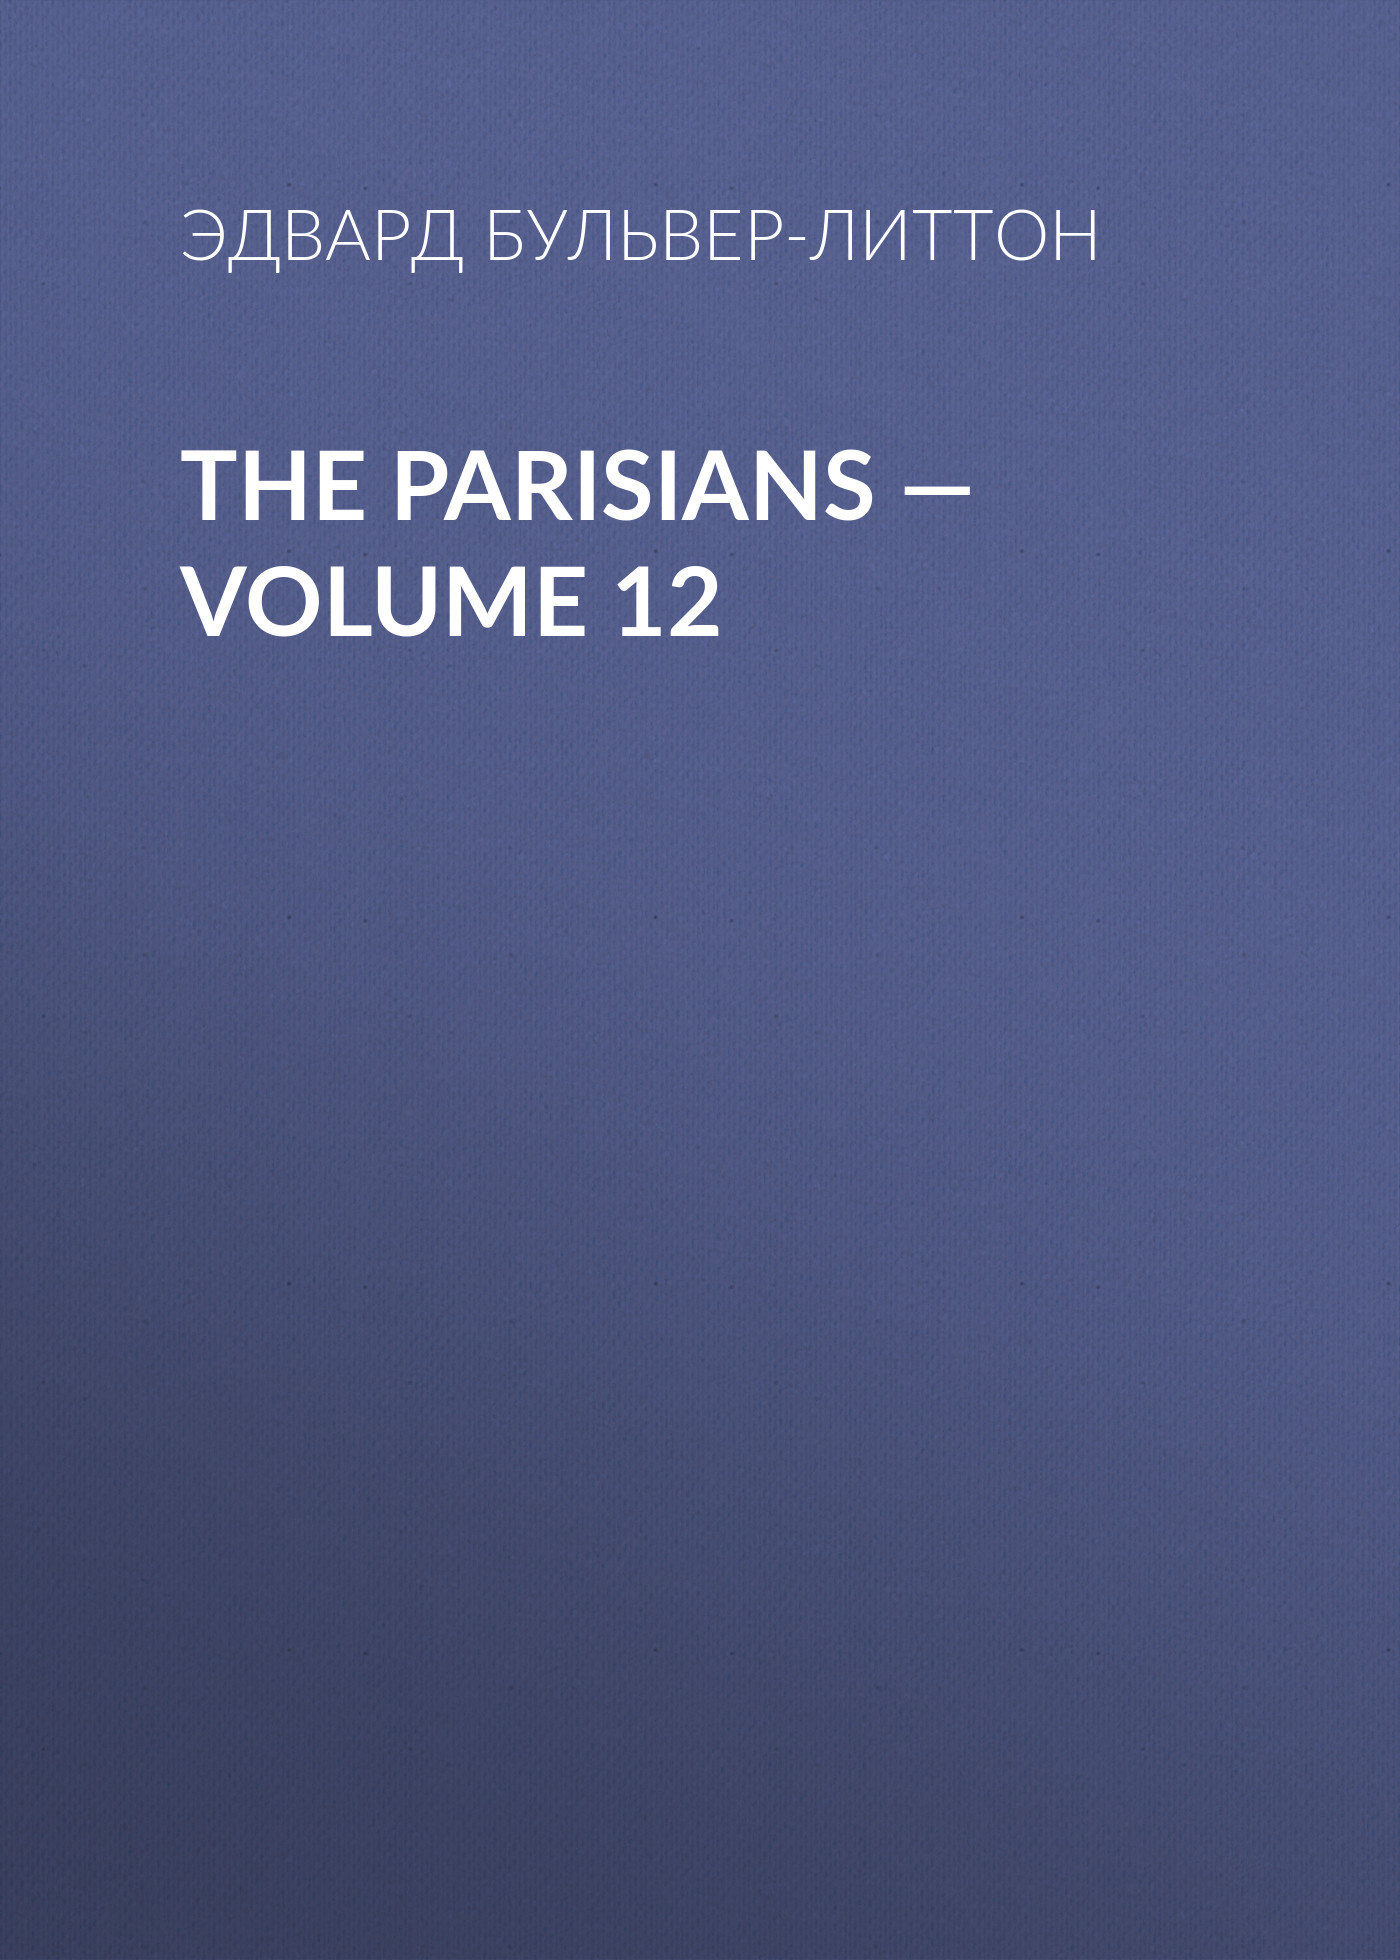 The Parisians — Volume 12